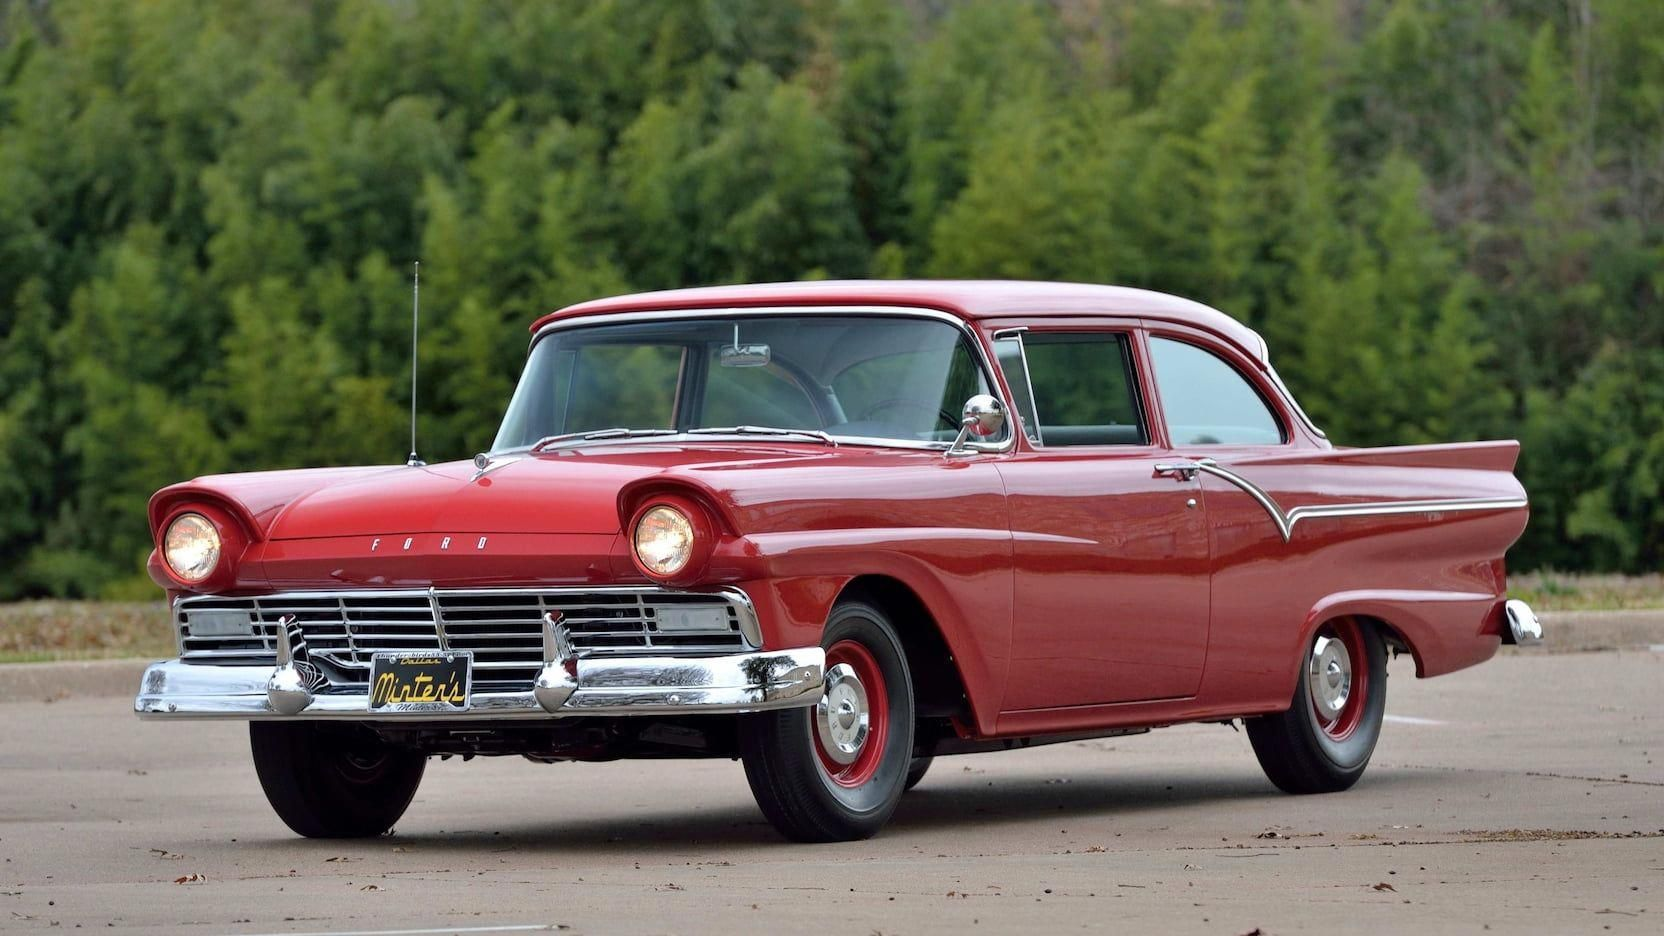 1957 Ford Custom Phase 1 presented as Lot R417 at